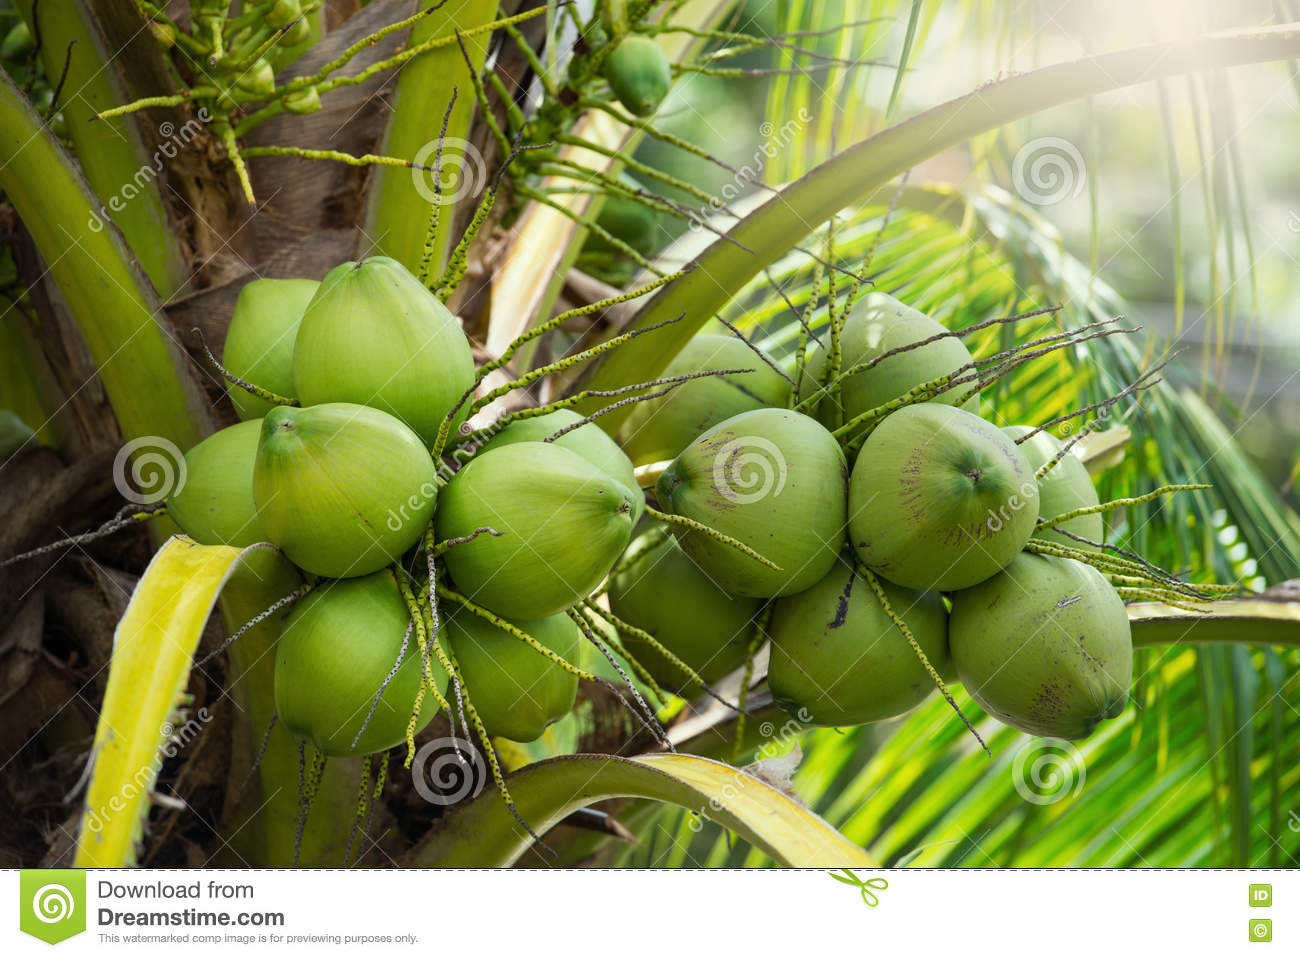 Green coconuts hanging on tree